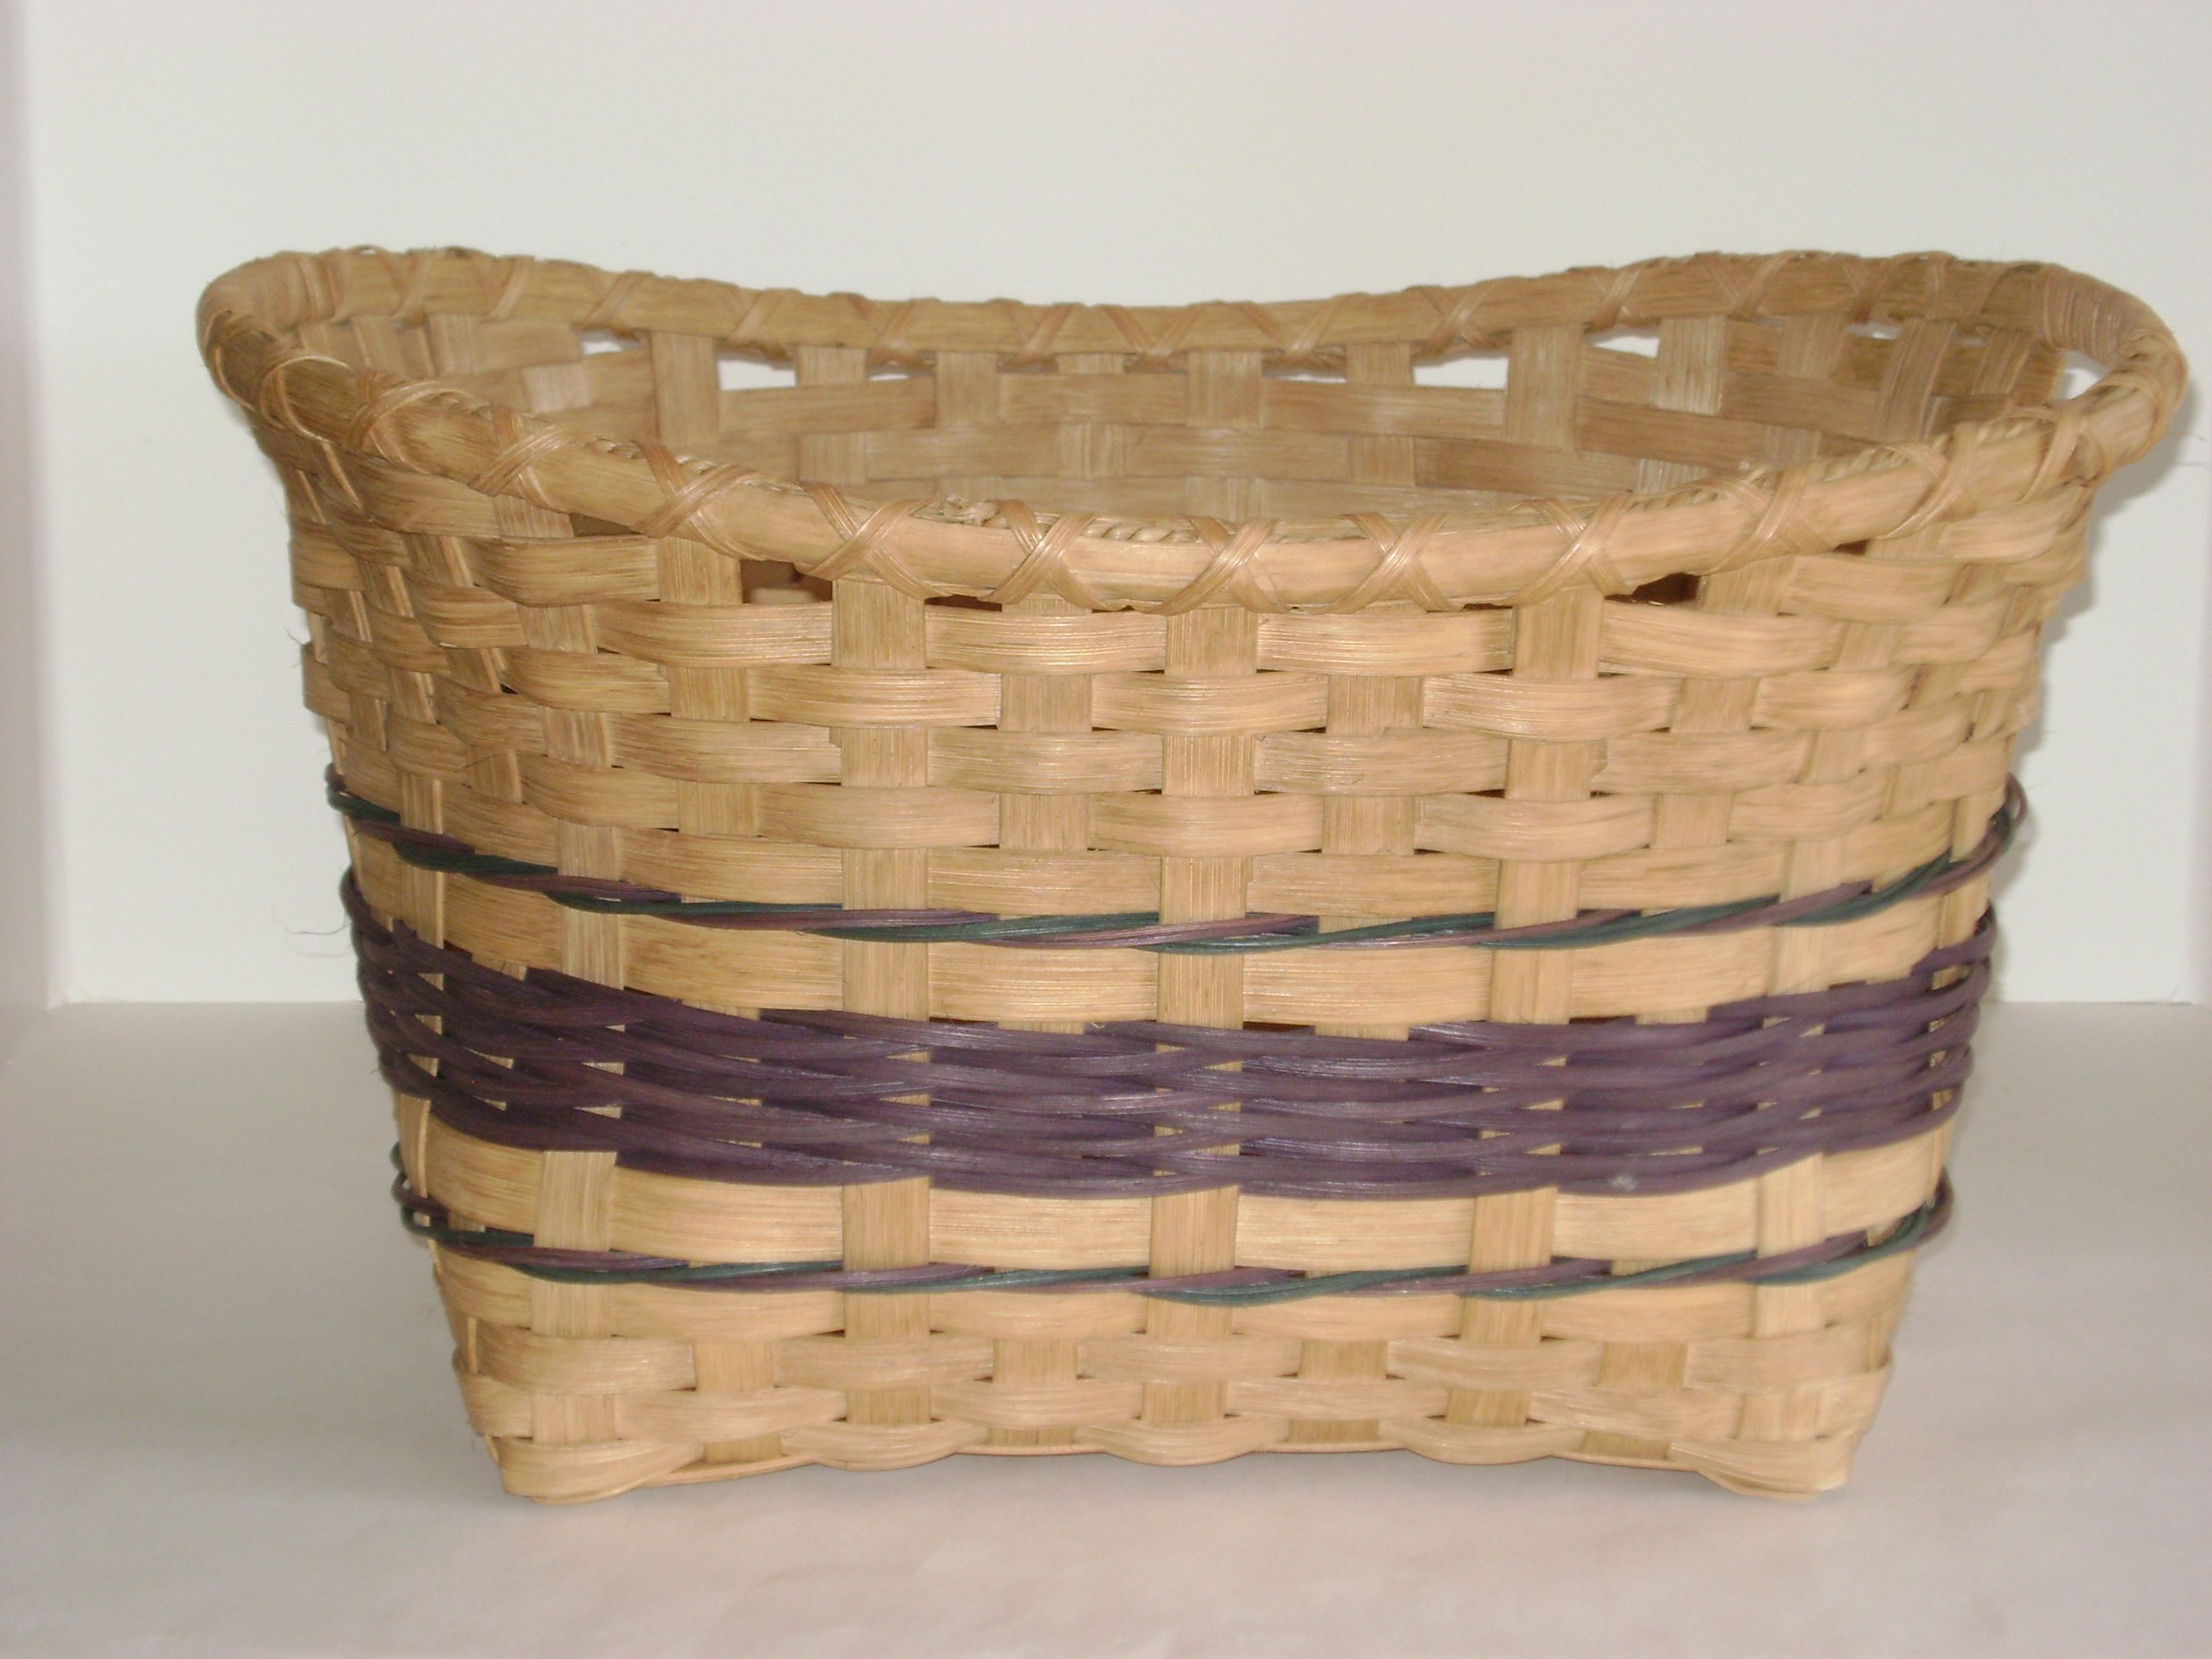 Continuous Weave Baskets - Tailgate Party Tub, Or Laundry Storage